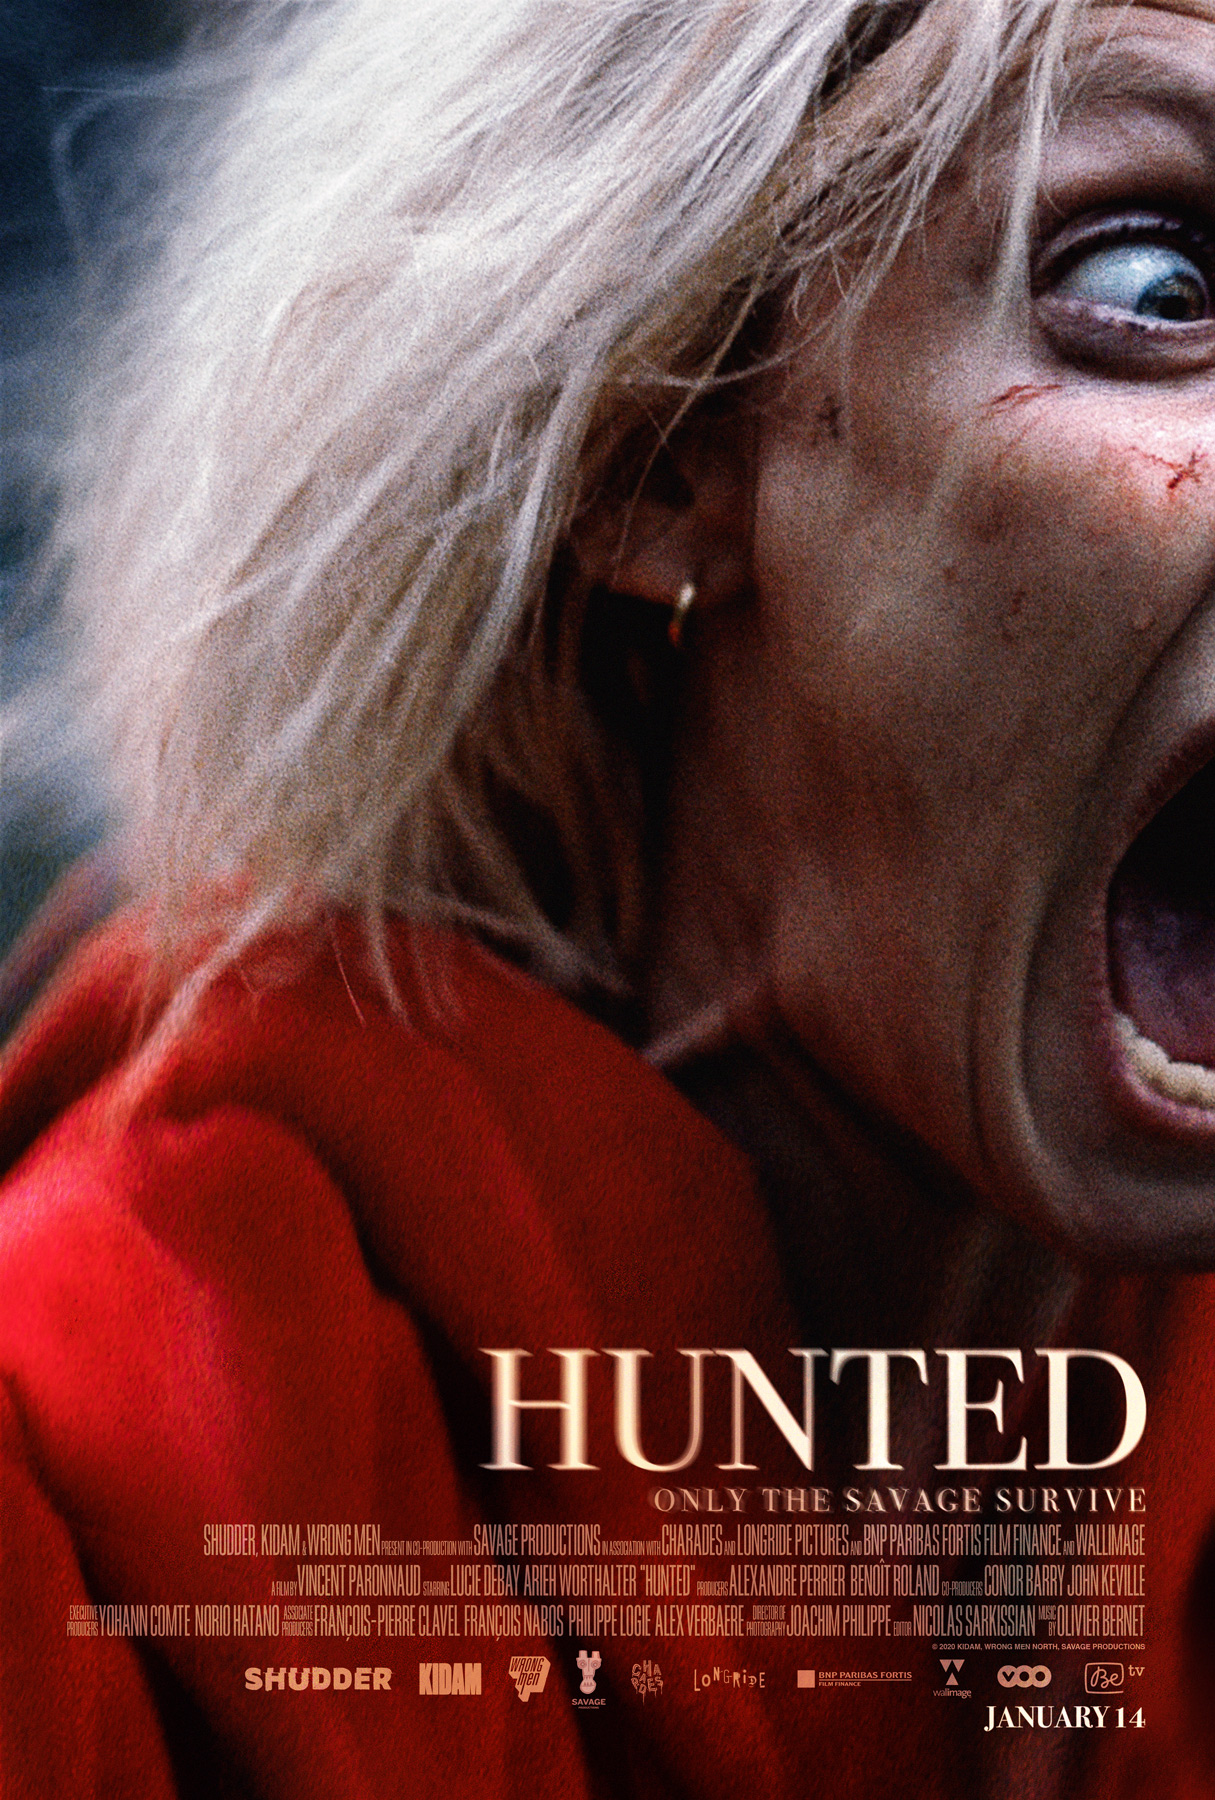 Hunted poster 1215x1800 1